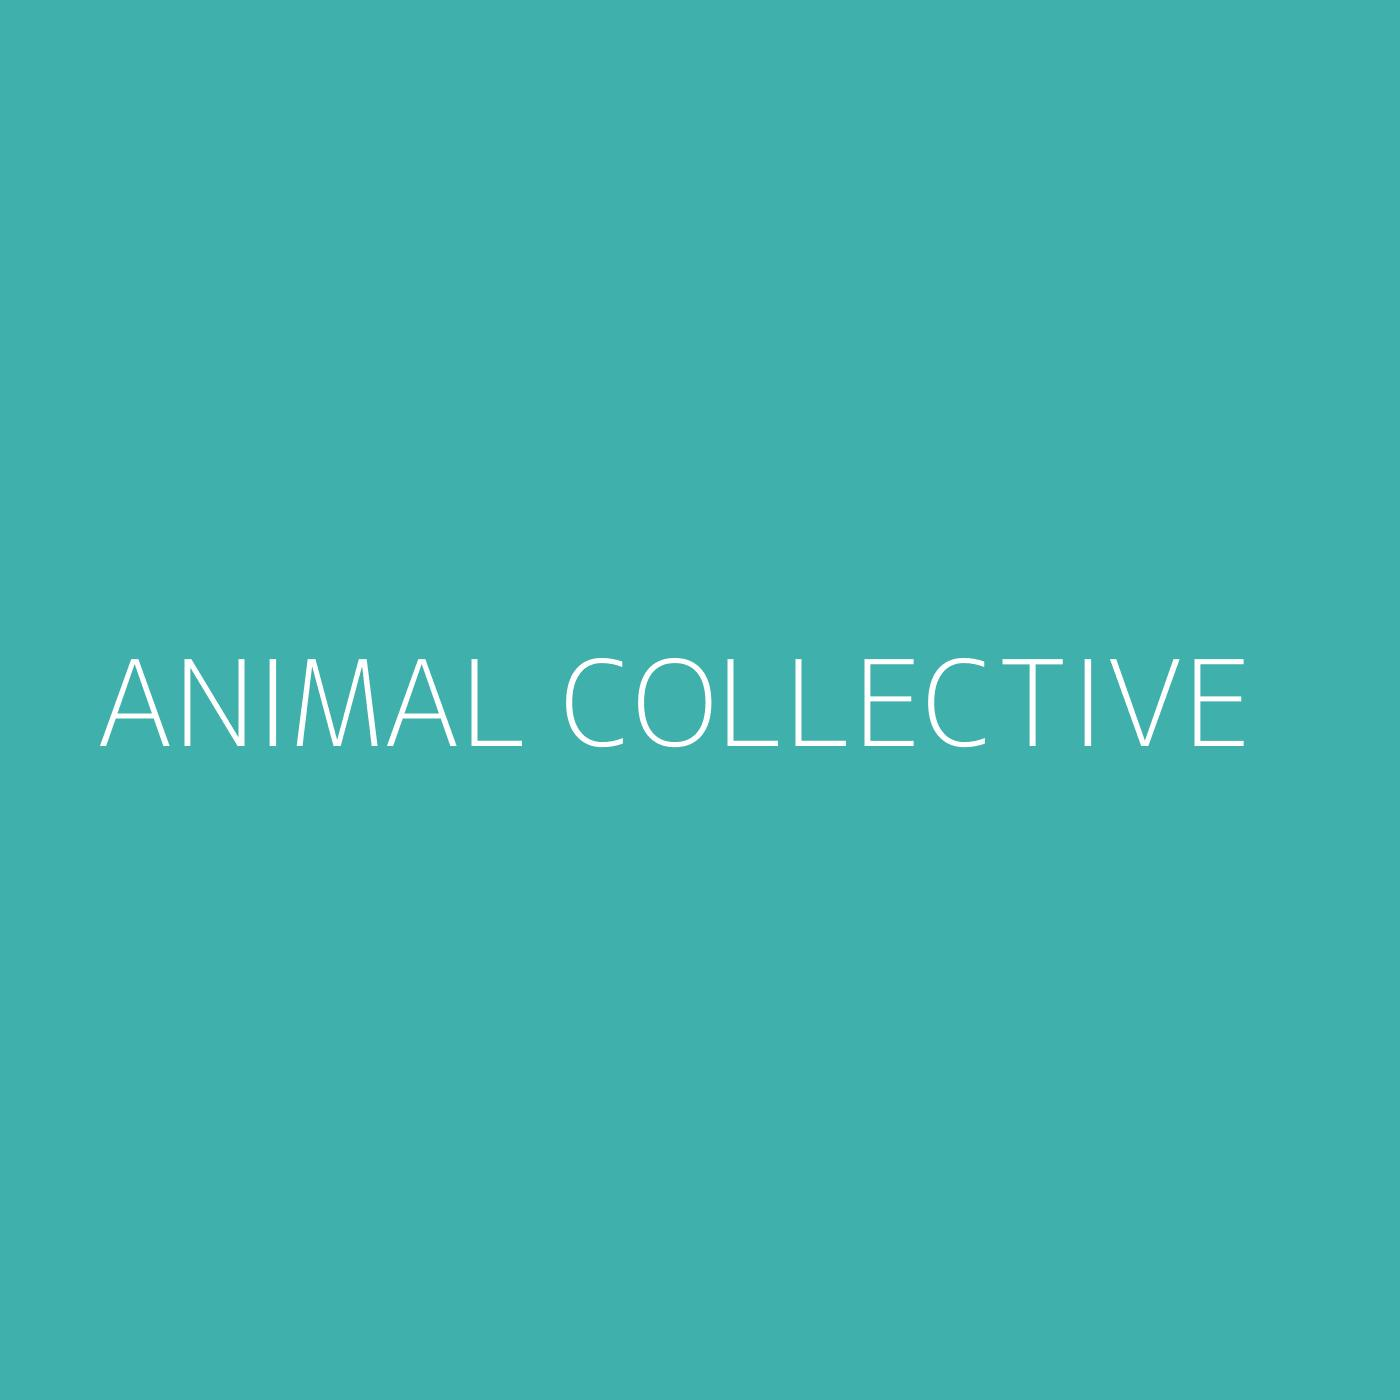 Animal Collective Playlist Artwork